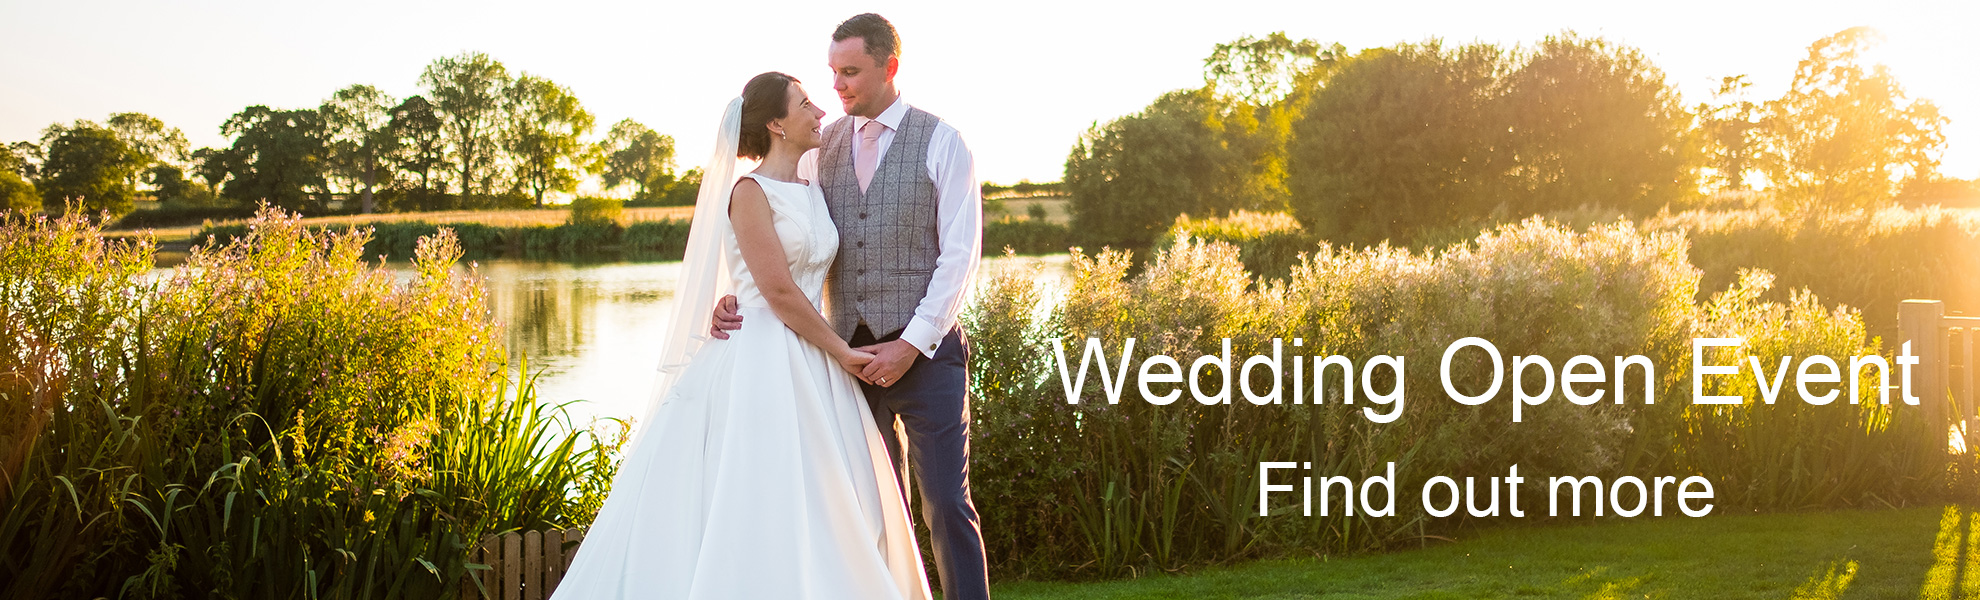 Sandhole Oak Barn Wedding Open Day - Sunday 15th September